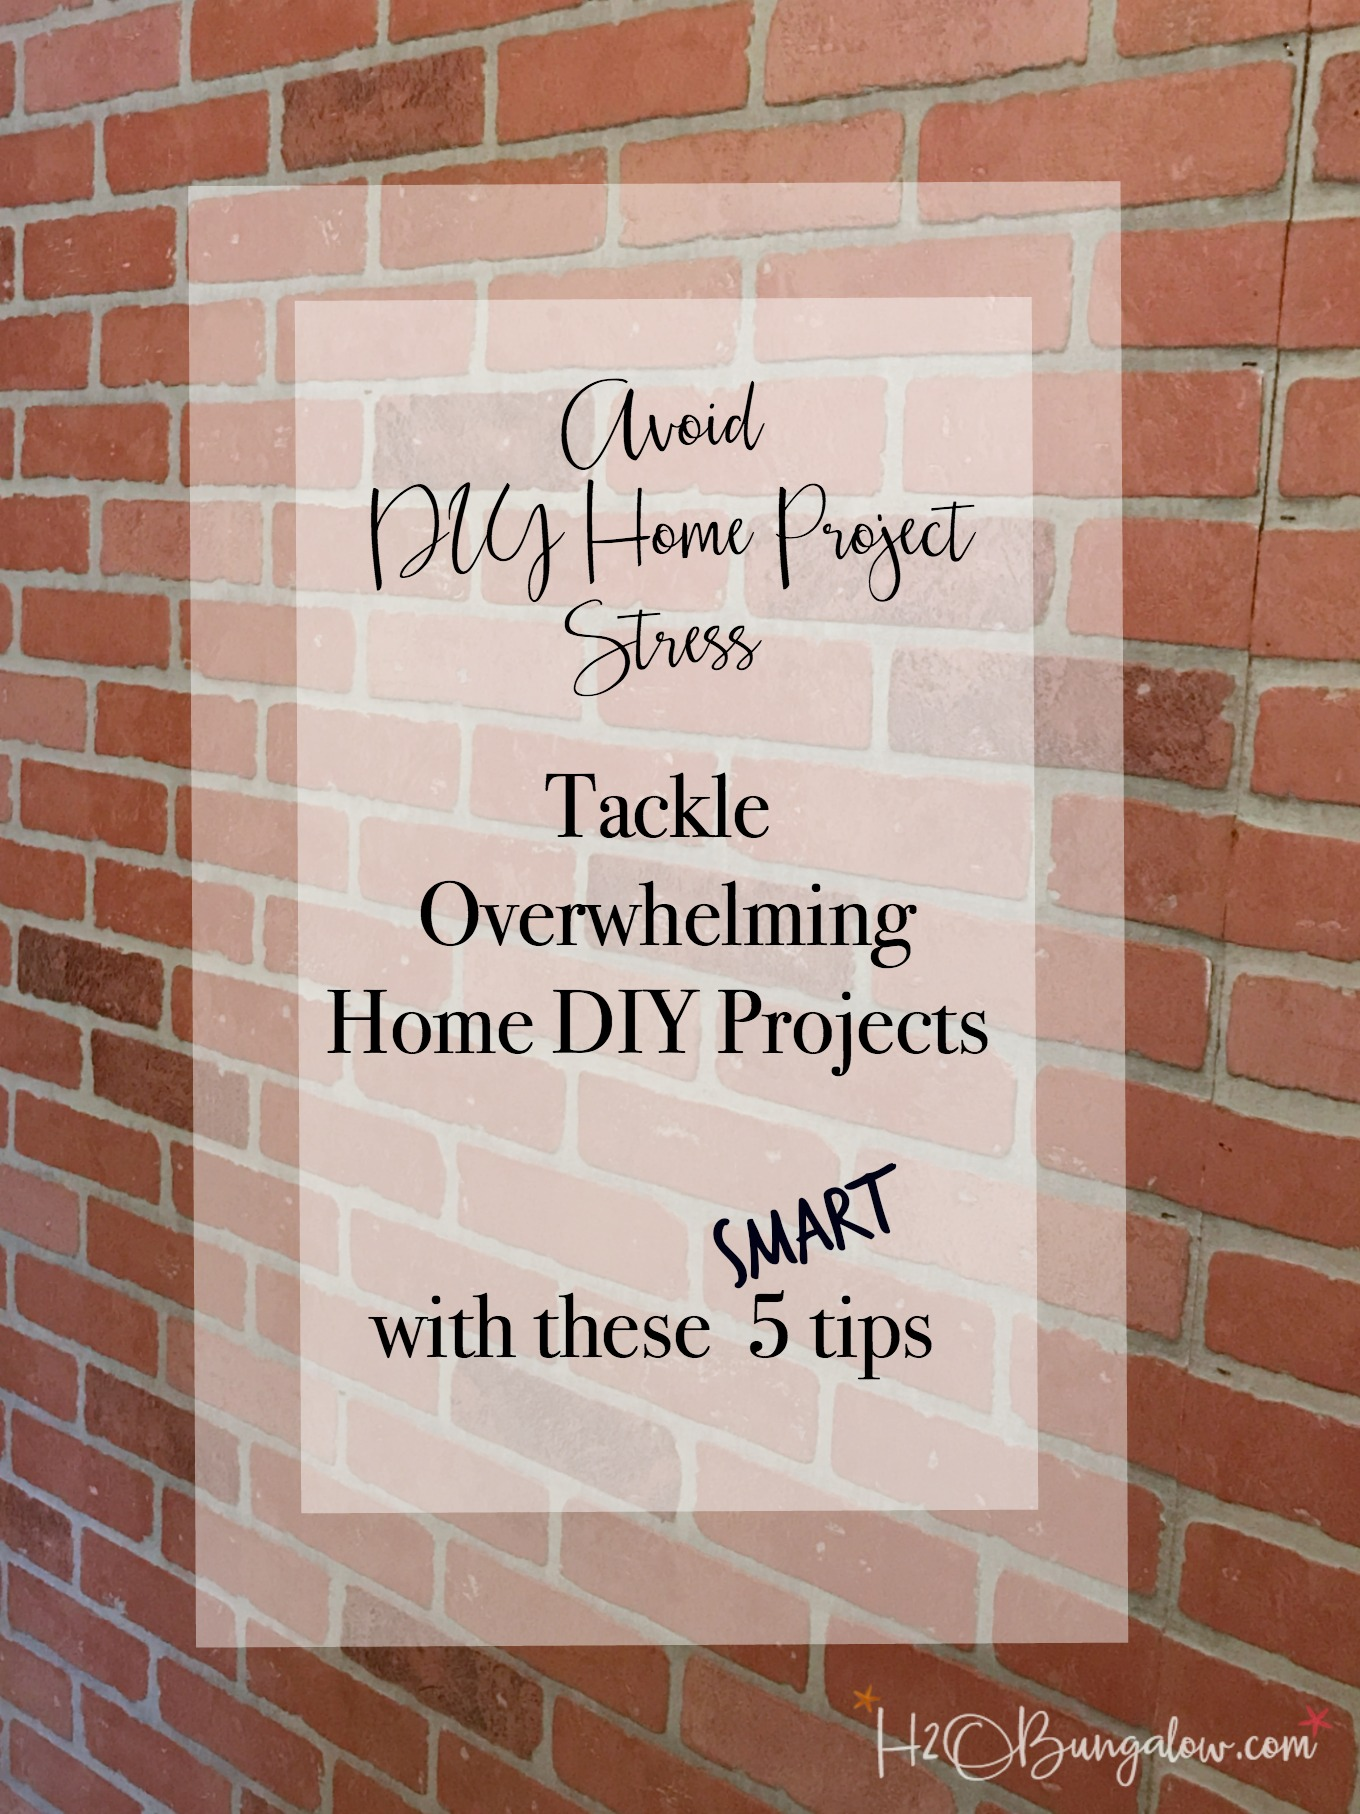 How to avoid home DIY project stress with 5 tips to tackle overwhelming home projects. Use these DIY organization tips to tackle your home remodel project.